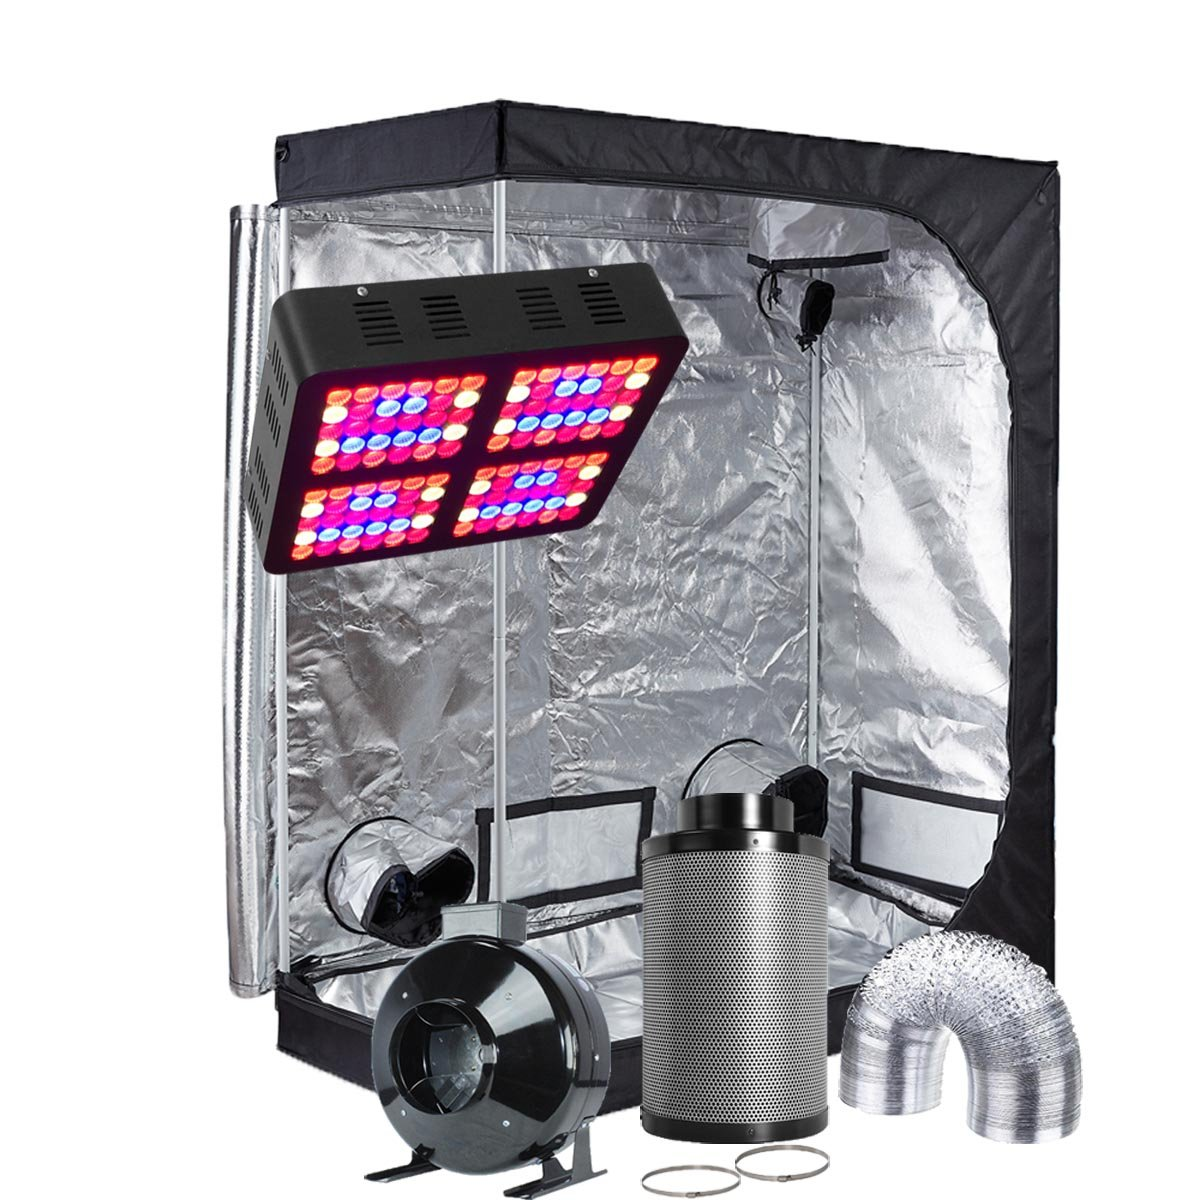 Oppolite LED Grow Tent Kit Complete Package LED 600W Grow Light Kit +6'' Fan Filter Ventilation Kit +48''X24''X60'' Grow Tent Setup Hydroponics Indoor Plants Growing System (LED600W+48''X24''X60''+6'')